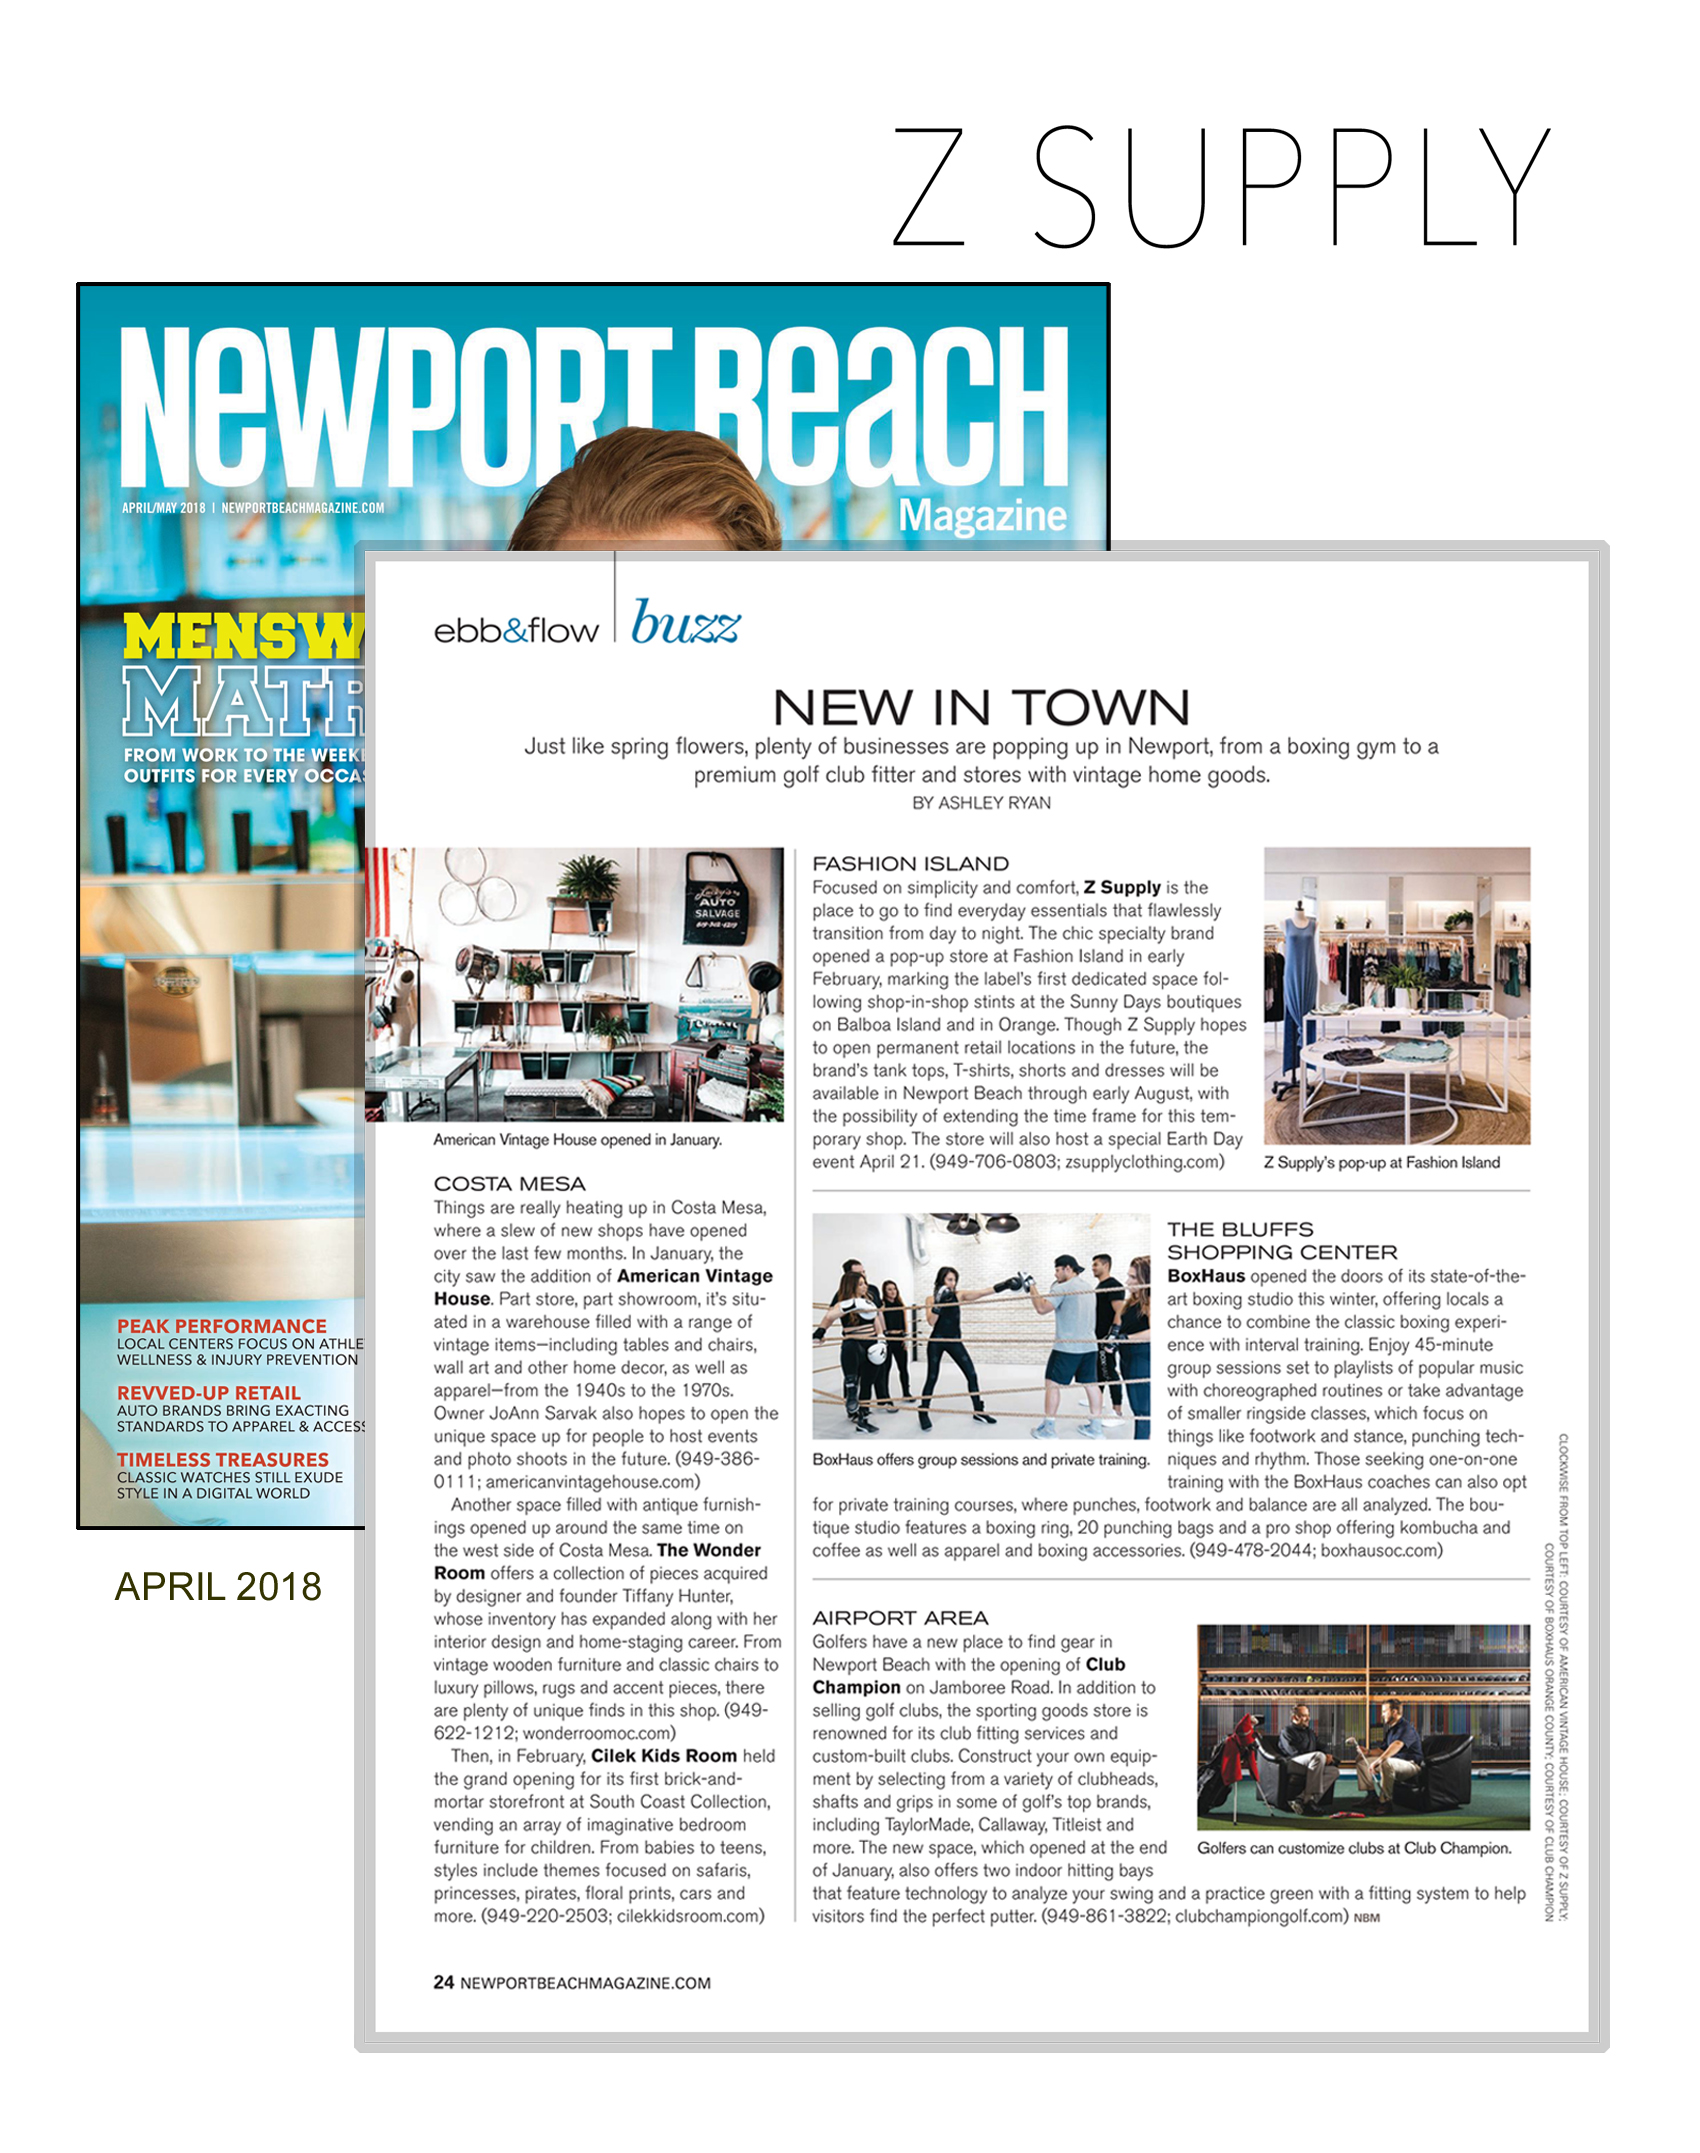 ZSUPPLYSTORE_NEWPORTBEACHMAG_APRIL2018.jpg